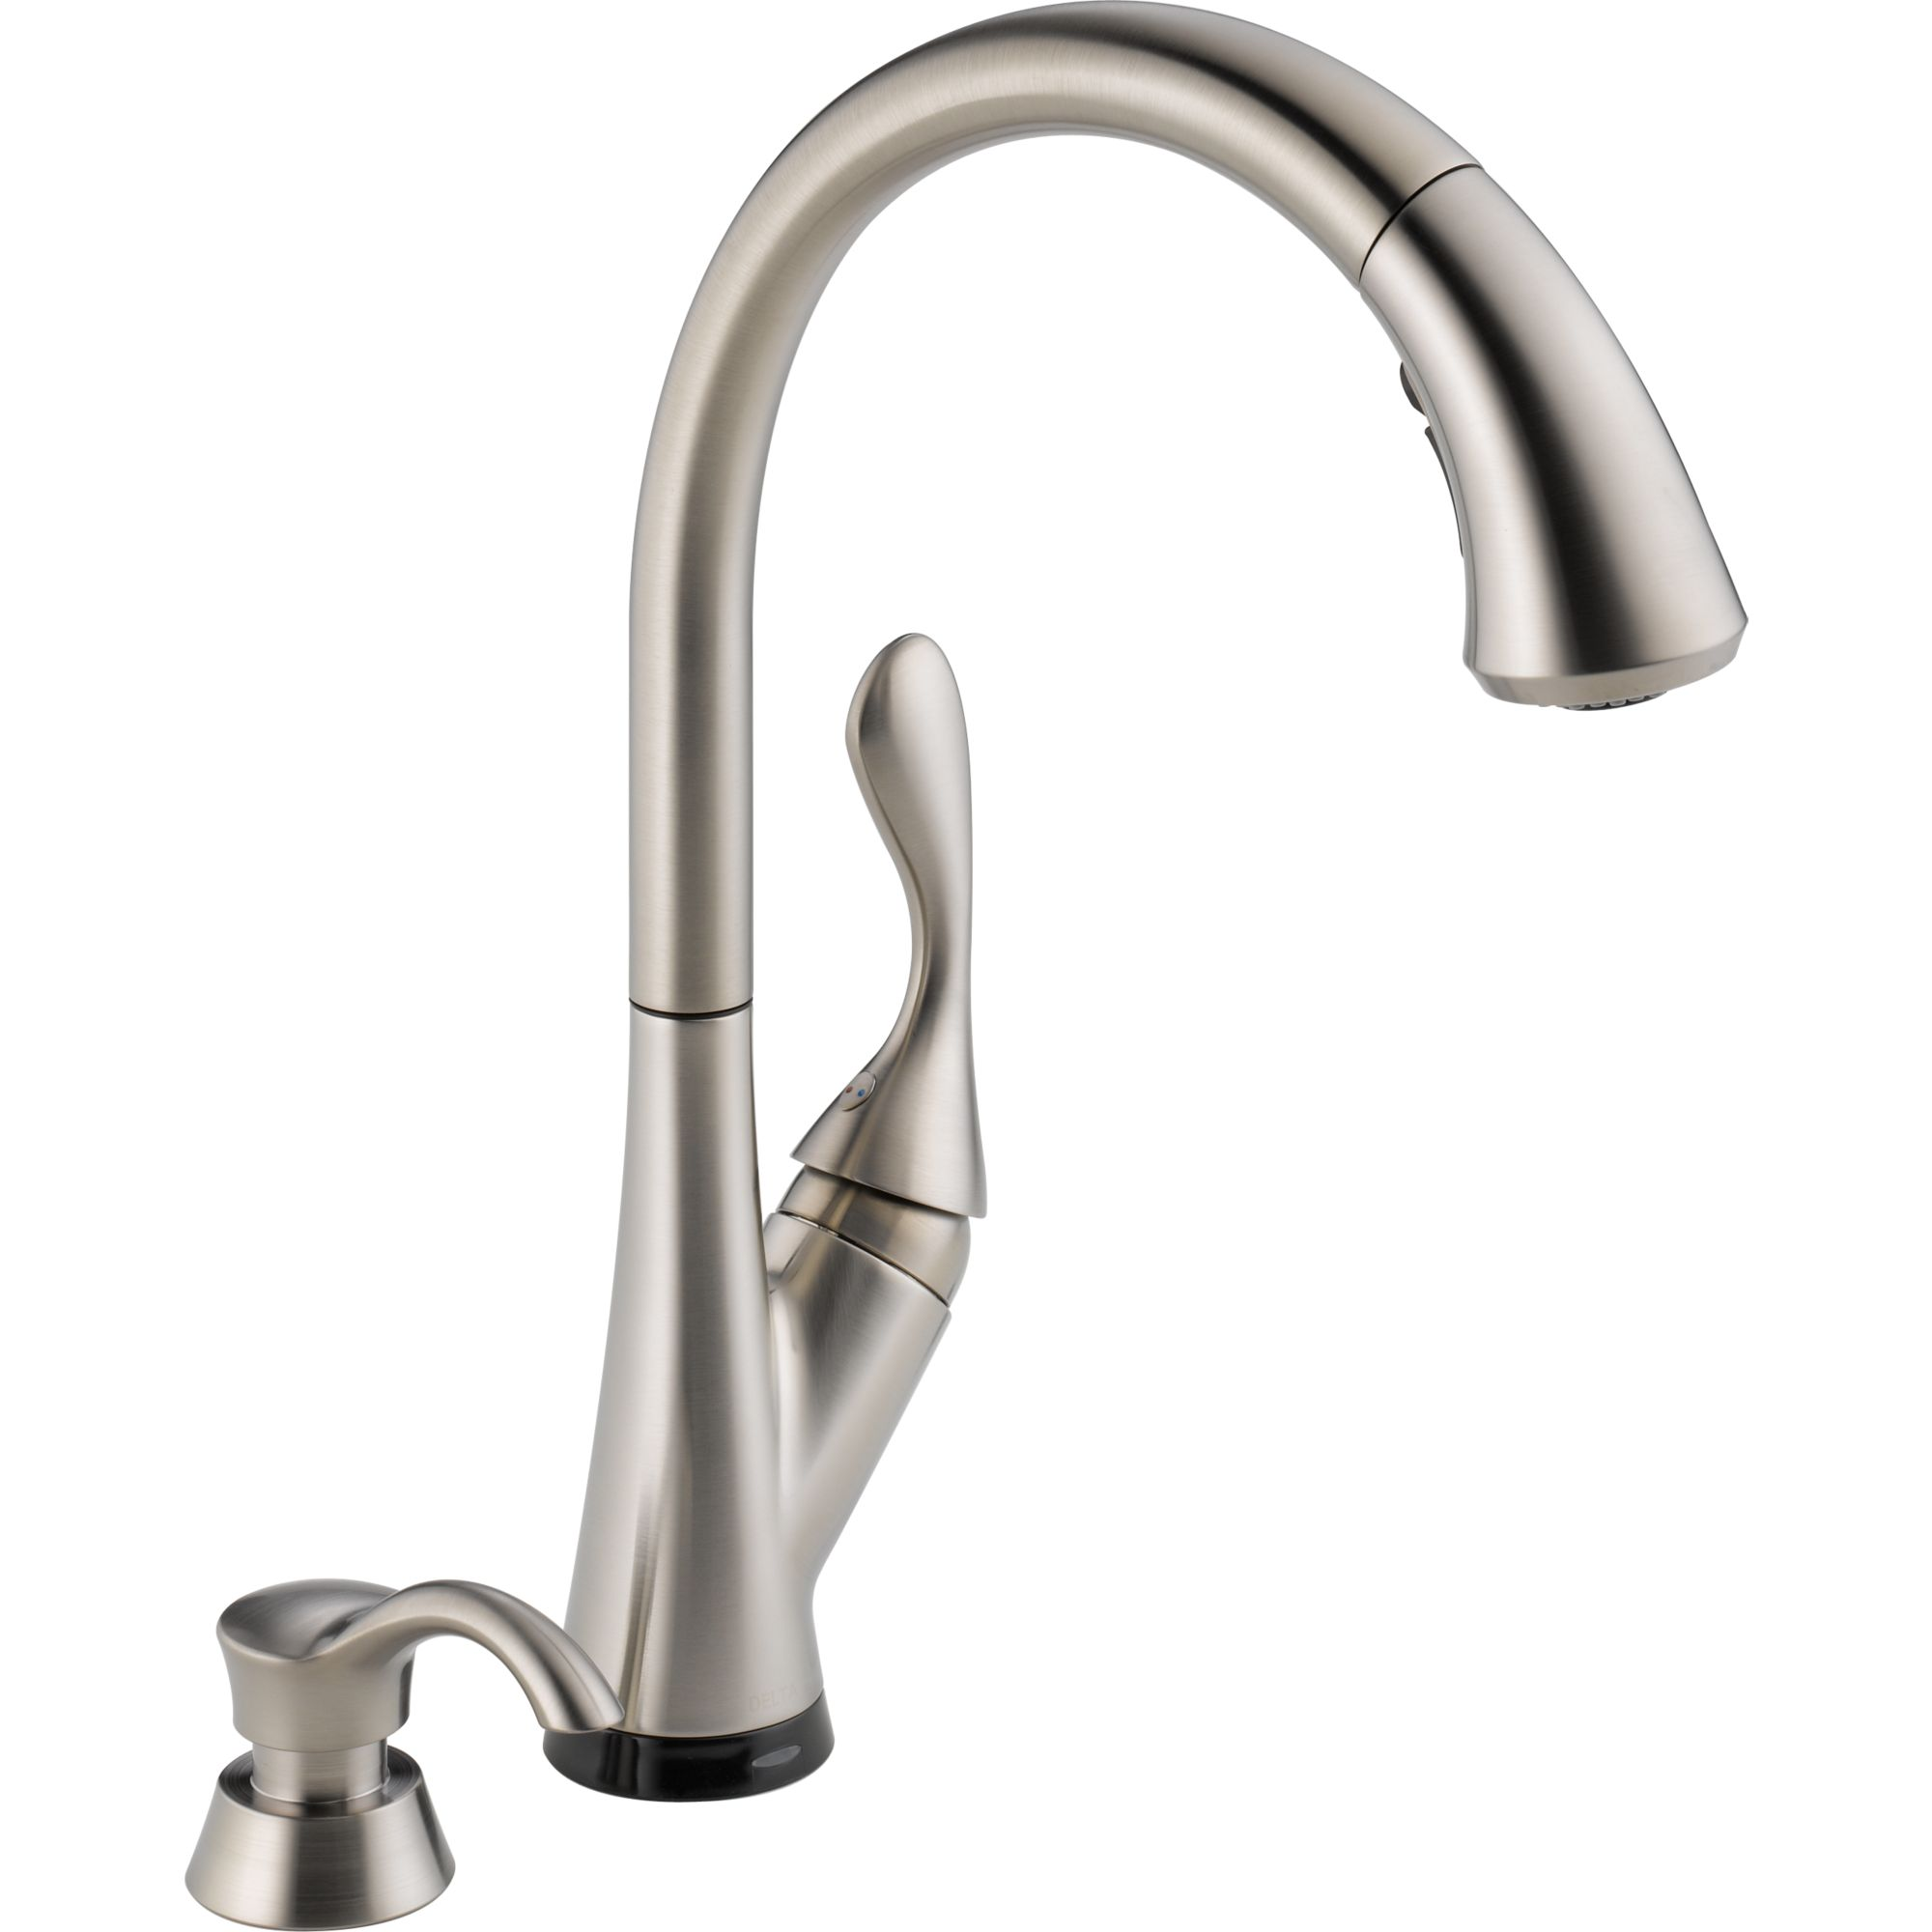 Delta 19922T-SSSD-DST Ashton Single-handle Kitchen Faucet with Pull-down Spray, Soap Dispenser, and Touch2O Technology Stainless Steel